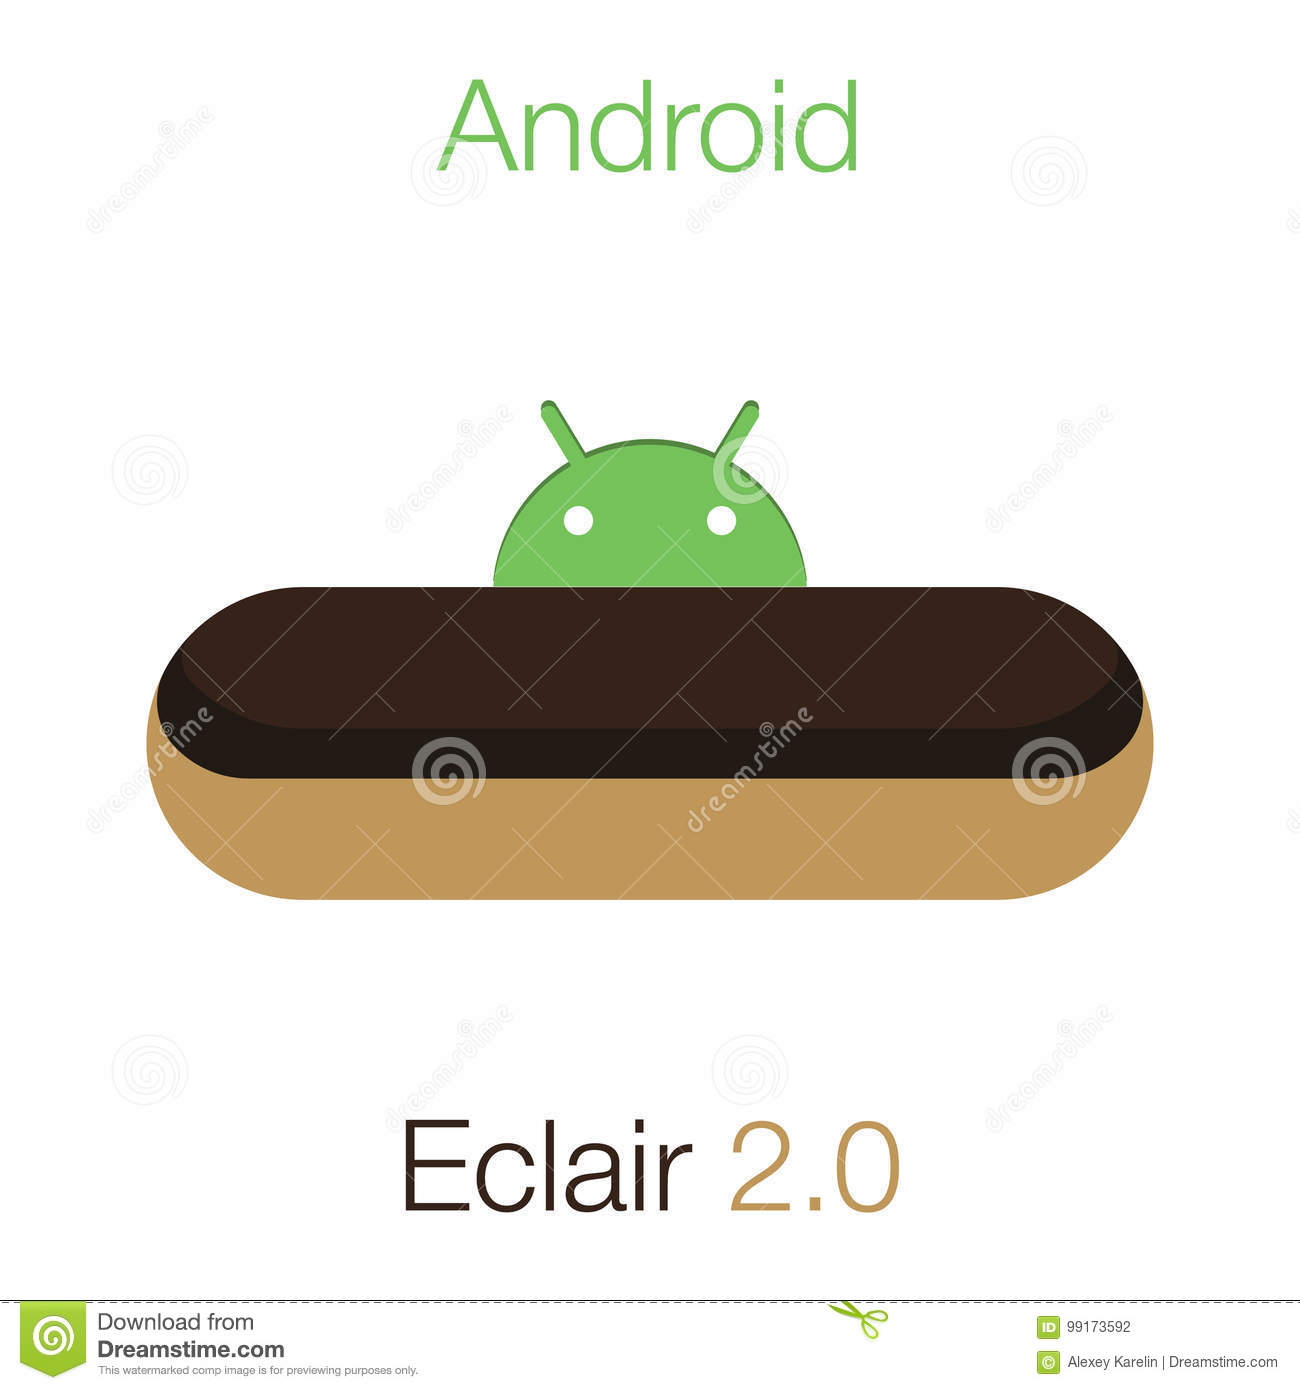 android eclair stock illustrations 4 android eclair stock illustrations vectors clipart dreamstime https www dreamstime com editorial photography android eclair flat vector design image99173592